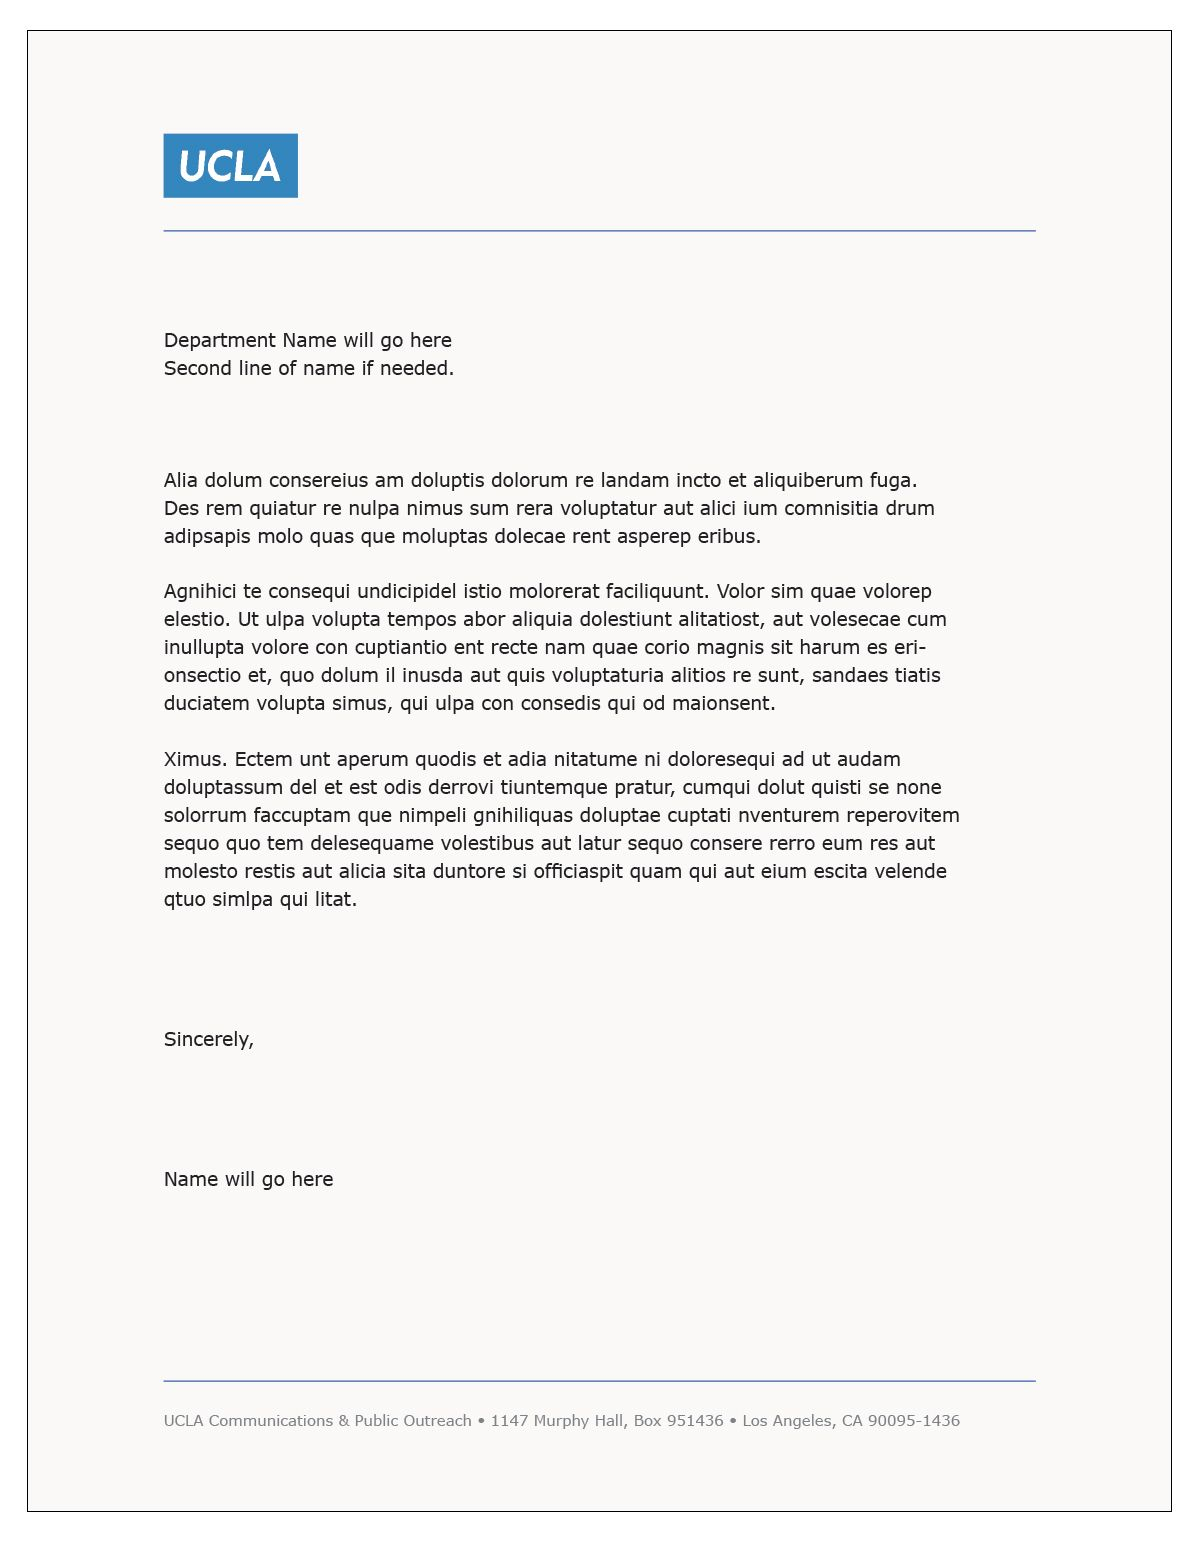 ucla resume template example-Cover Letter Template Ucla cover coverlettertemplate letter template 16-q